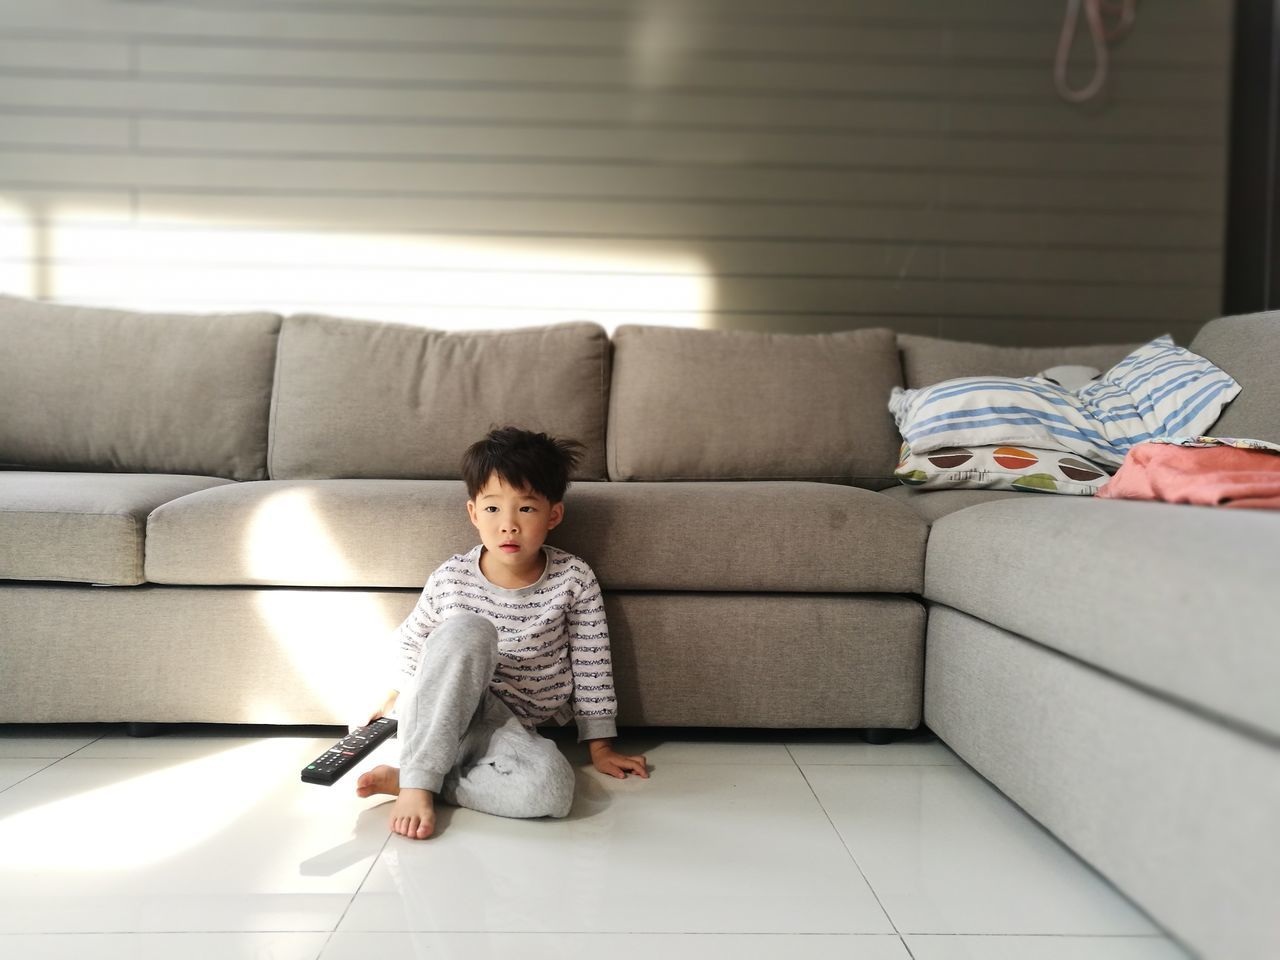 Sofa Living Room Indoors  One Person Sitting Casual Clothing Home Interior Domestic Life People Full Length Childhood Lifestyles Relaxation Happiness Barefoot Cute Smiling Candid Child Comfortable